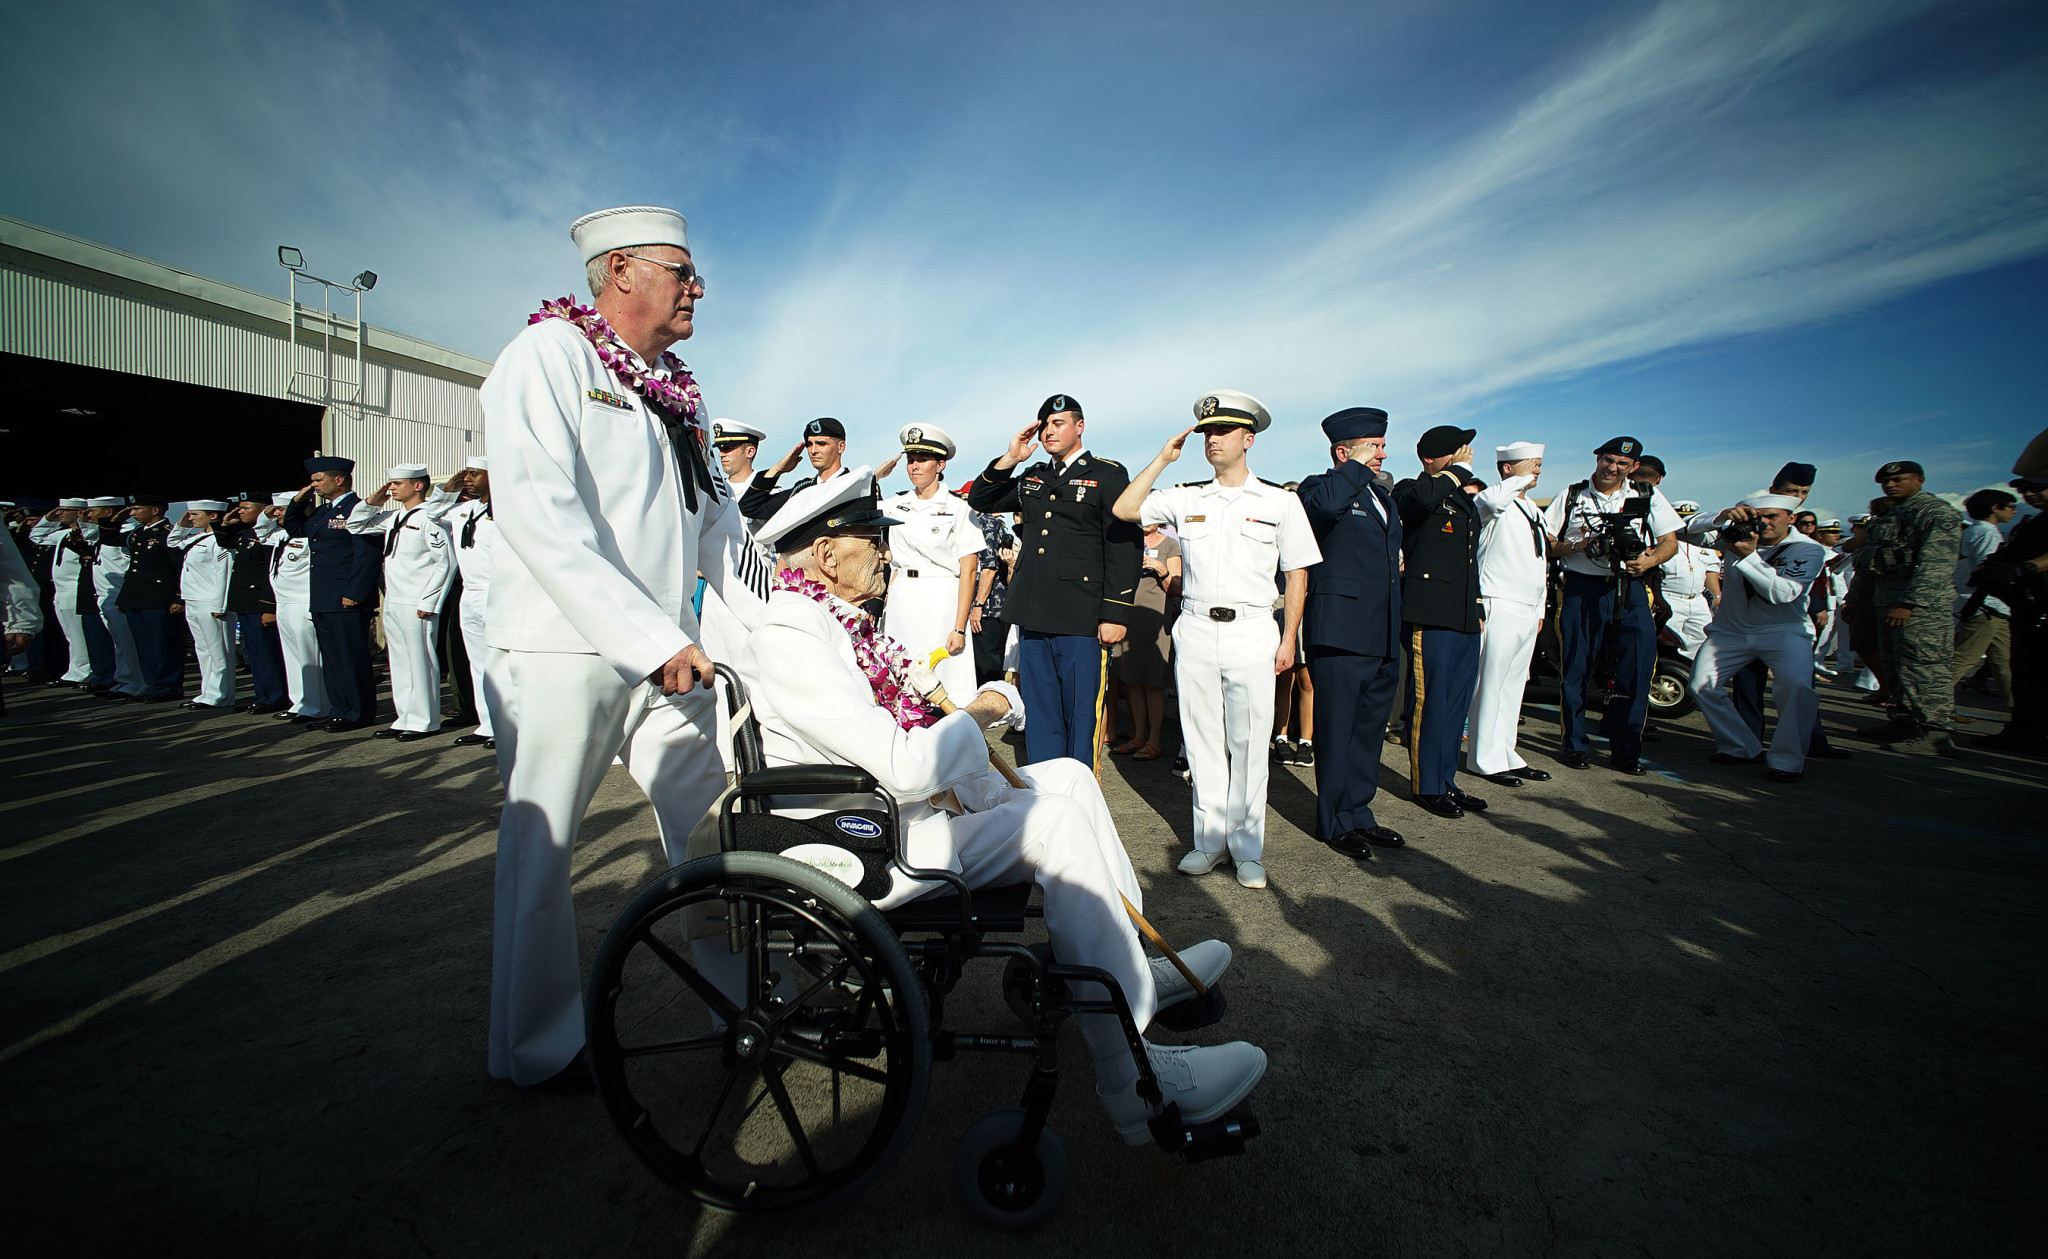 <p>As they exited the ceremony, Pearl Harbor survivors and other World War II veterans were saluted by active-duty personnel from all branches.</p>